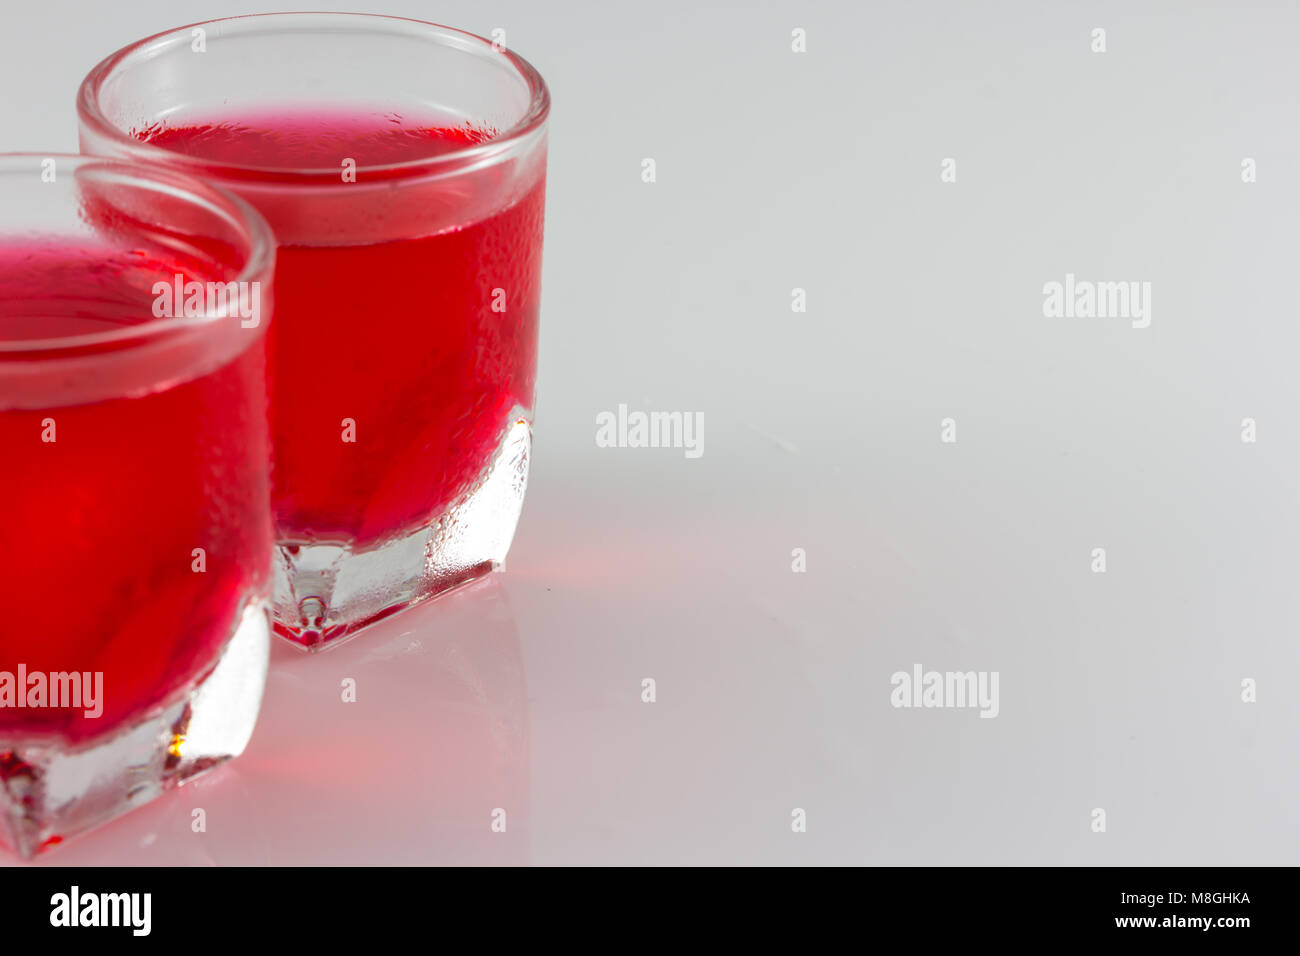 a glass of red water isolate in white background - Stock Image